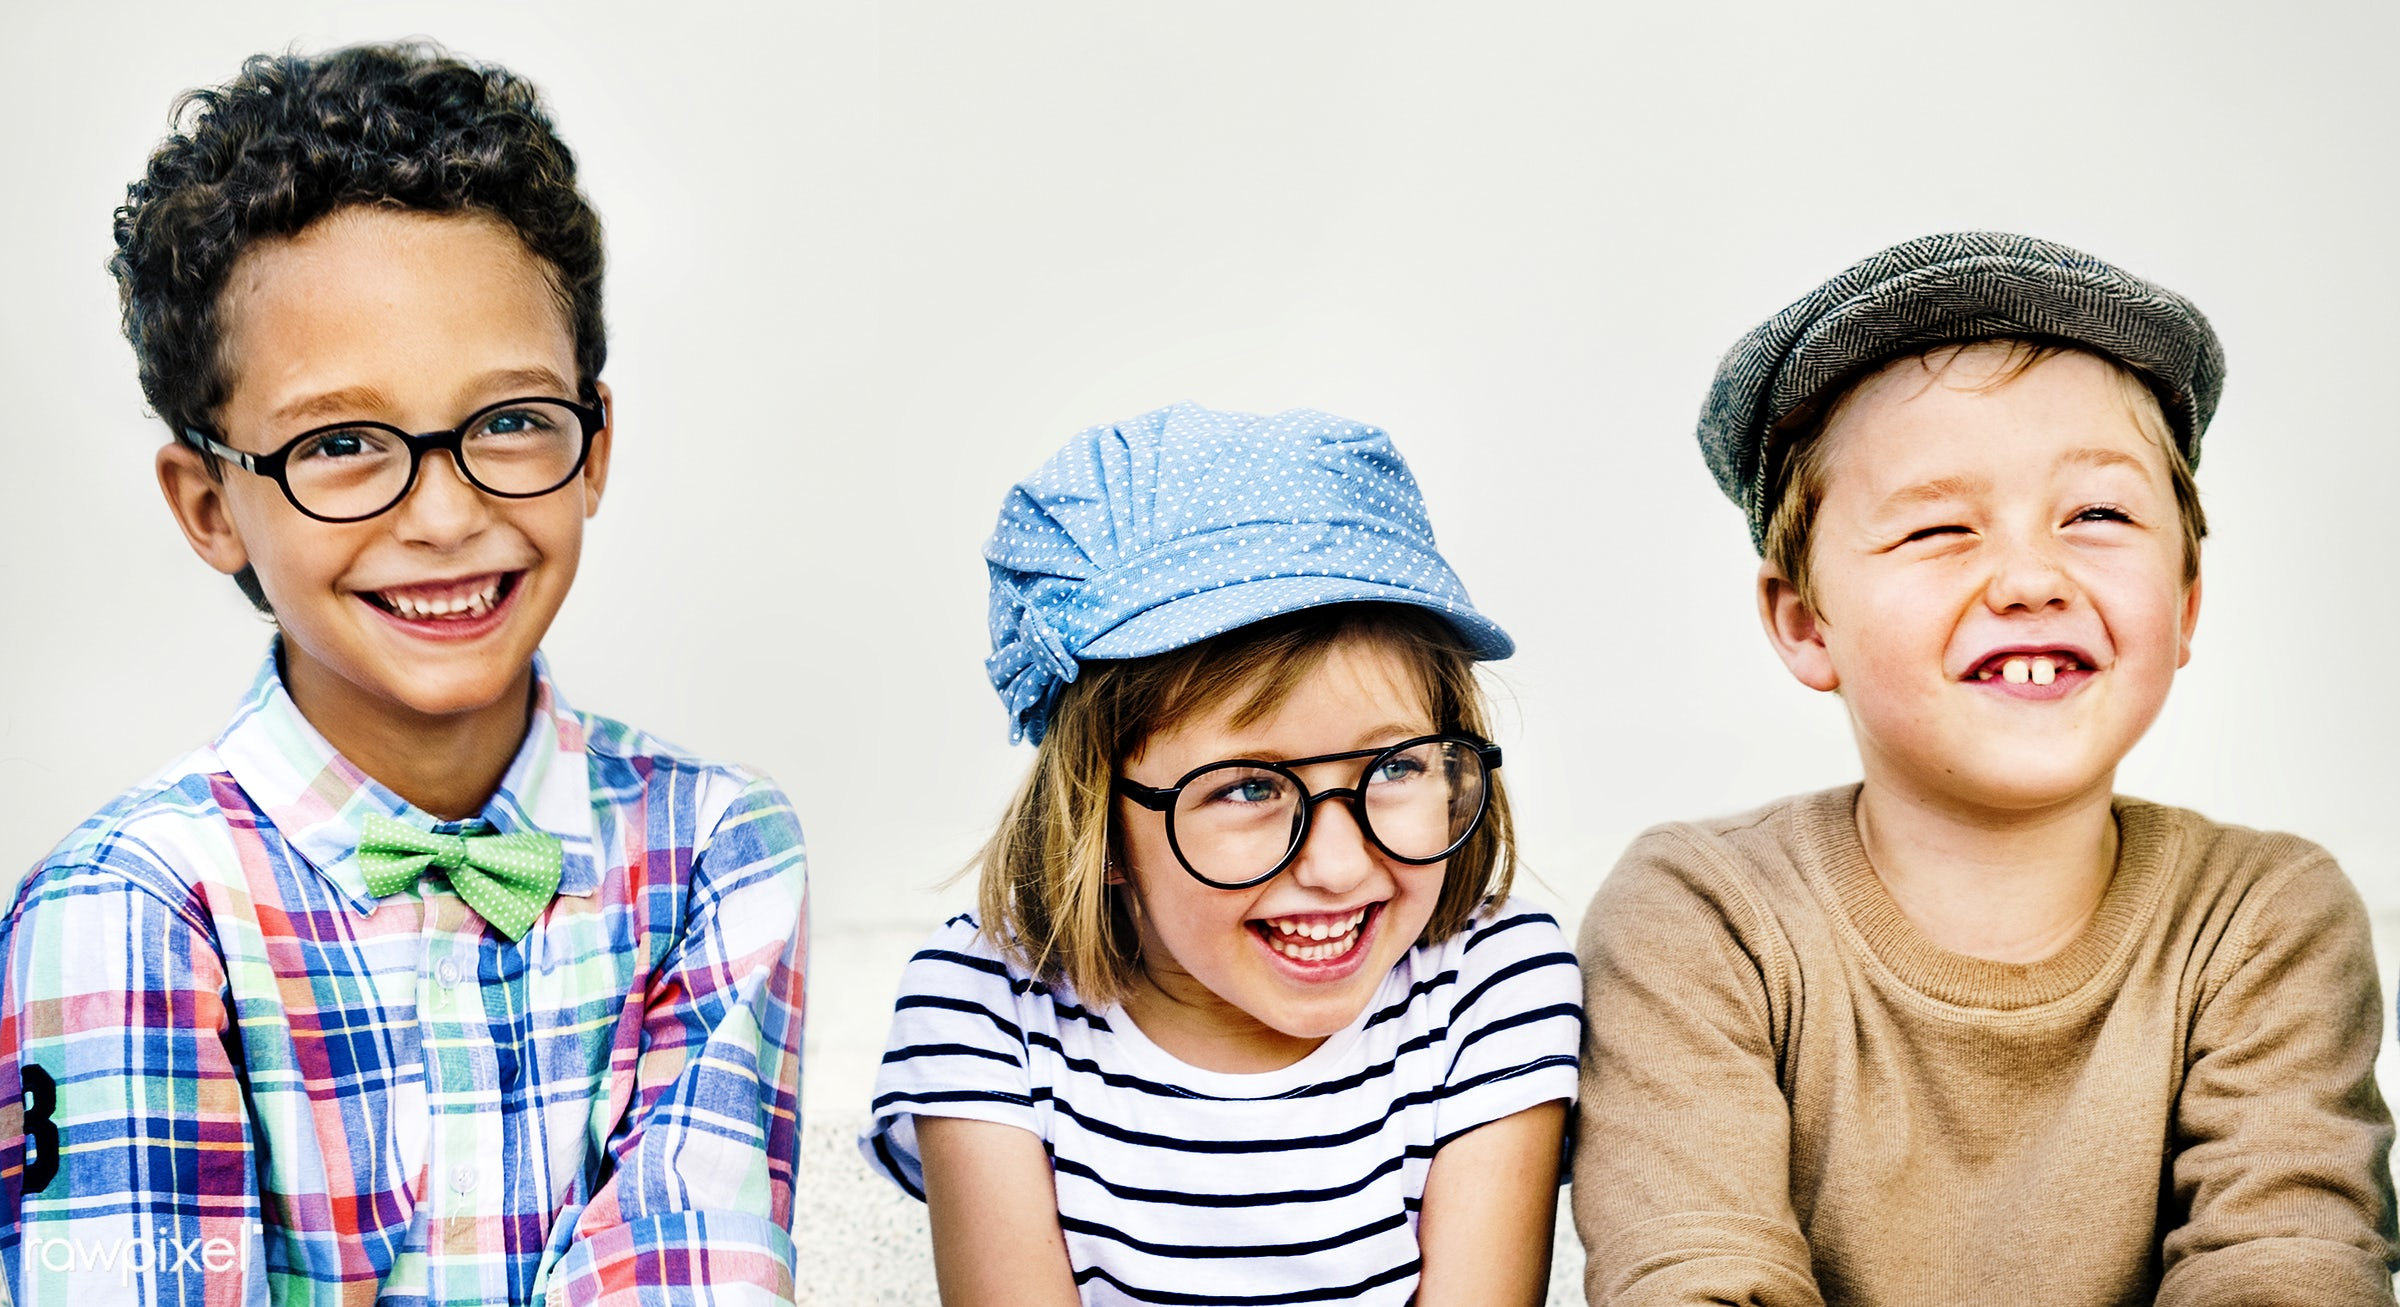 Happy kids in the park - hipster, activities, adorable, asian ethnicity, bonding, boys, casual, cheerful, child, childhood,...